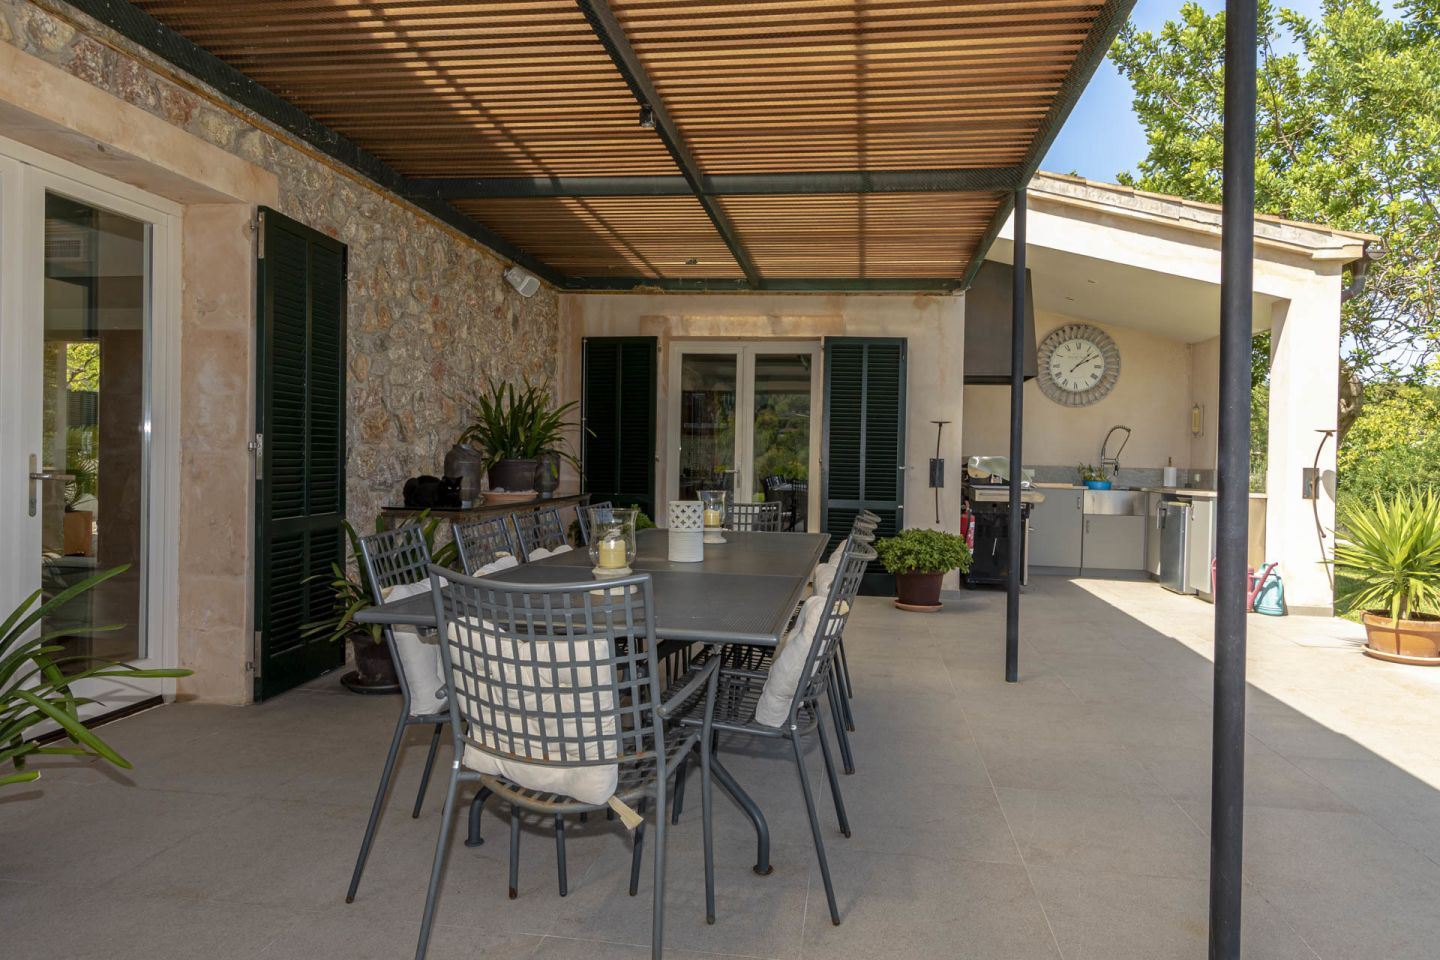 4 Bed Countryside House for sale in POLLENSA 5